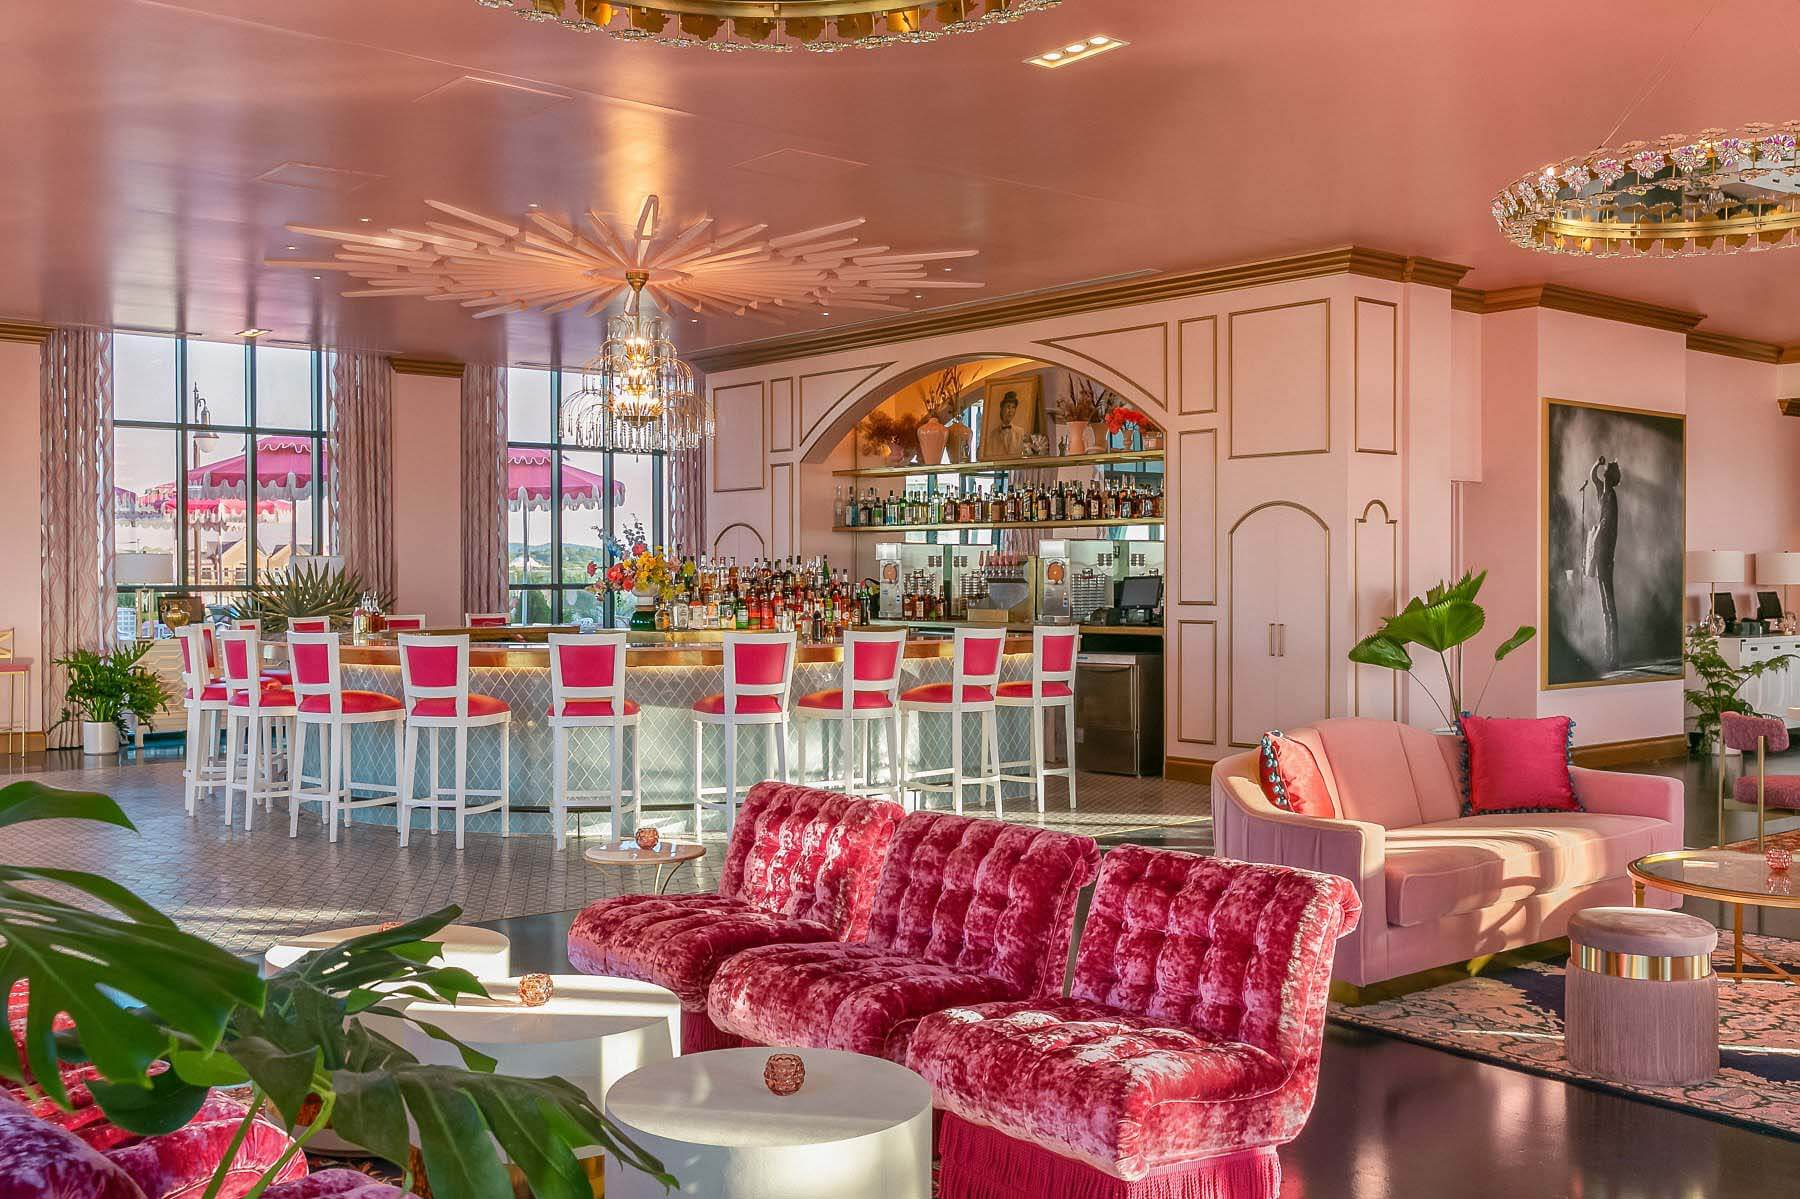 Interior of White Limozeen, with pink decor and a huge bar setup